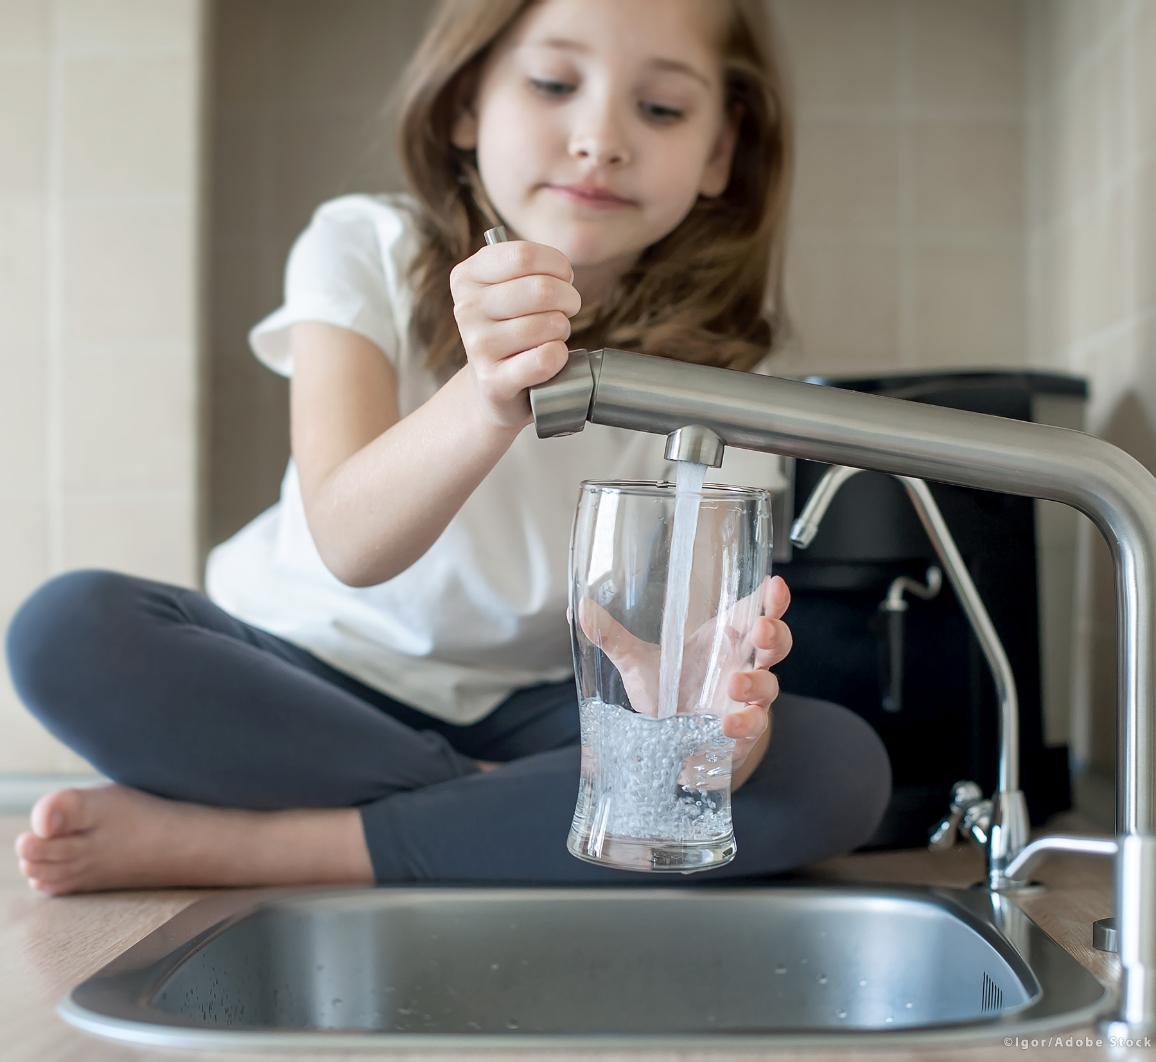 Safe tap water: cheaper for consumers and better for the environment.©AdobeStock/Igor